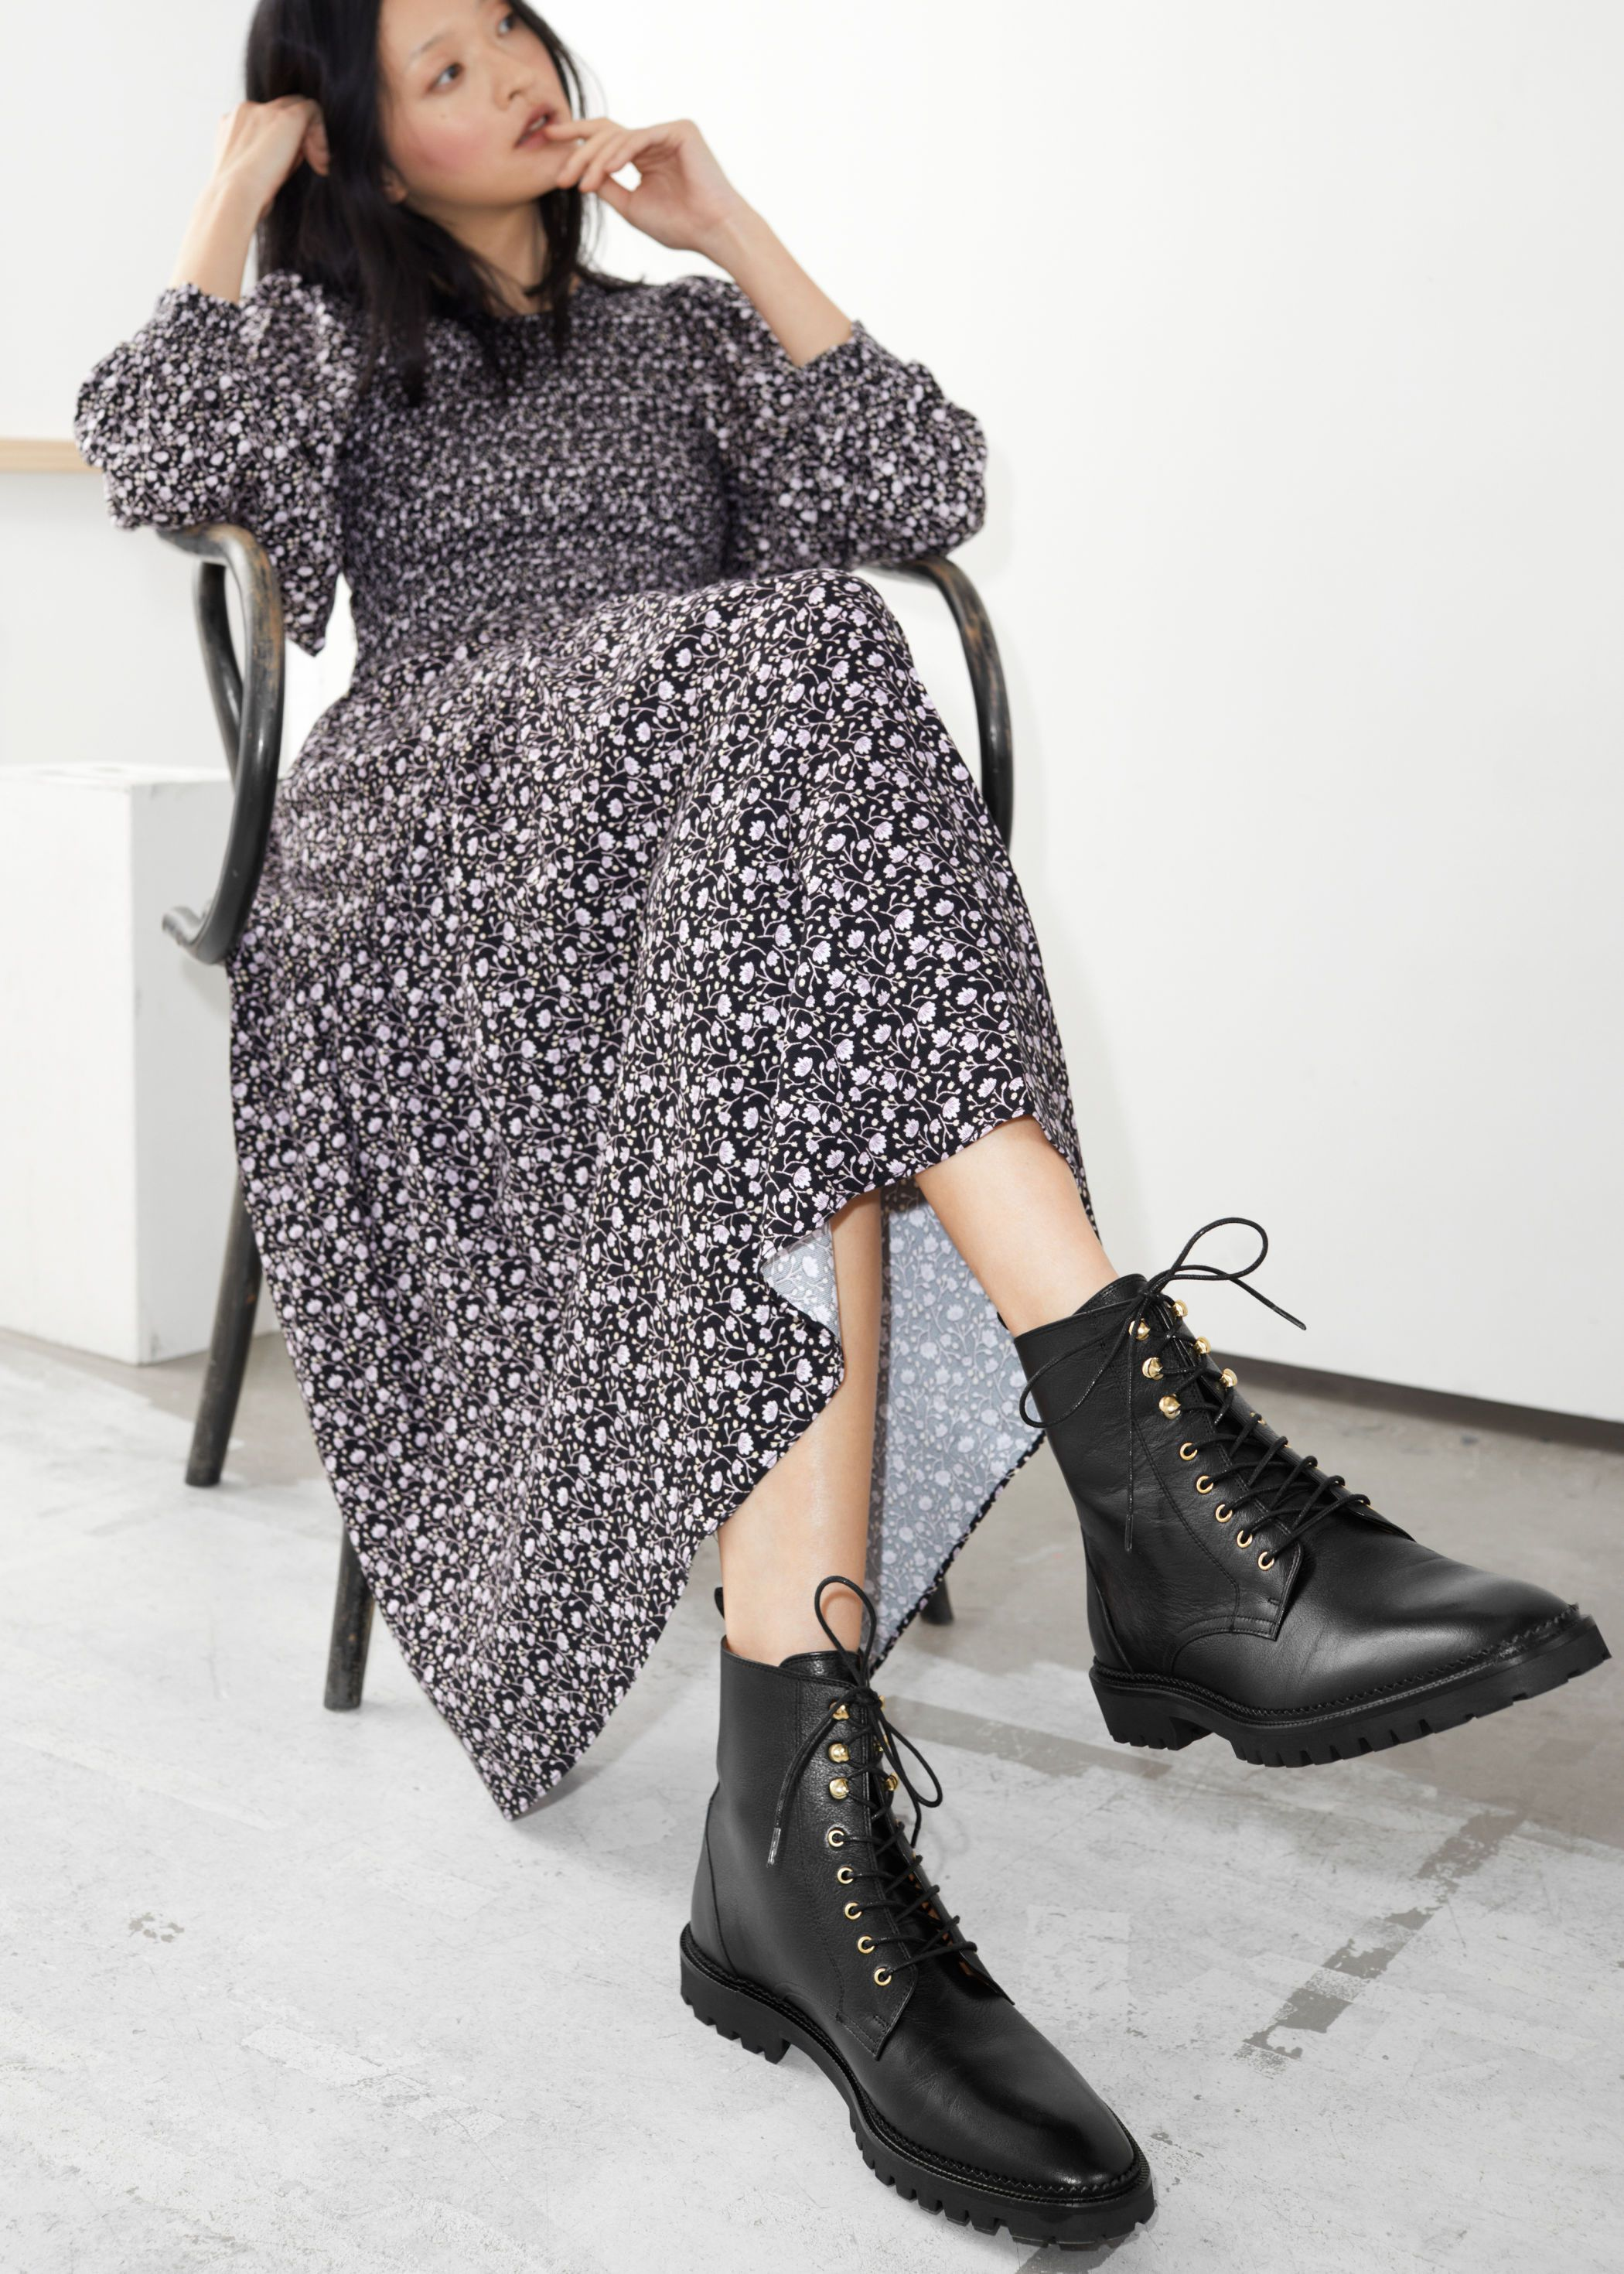 Leather Boots   Lace dress outfit